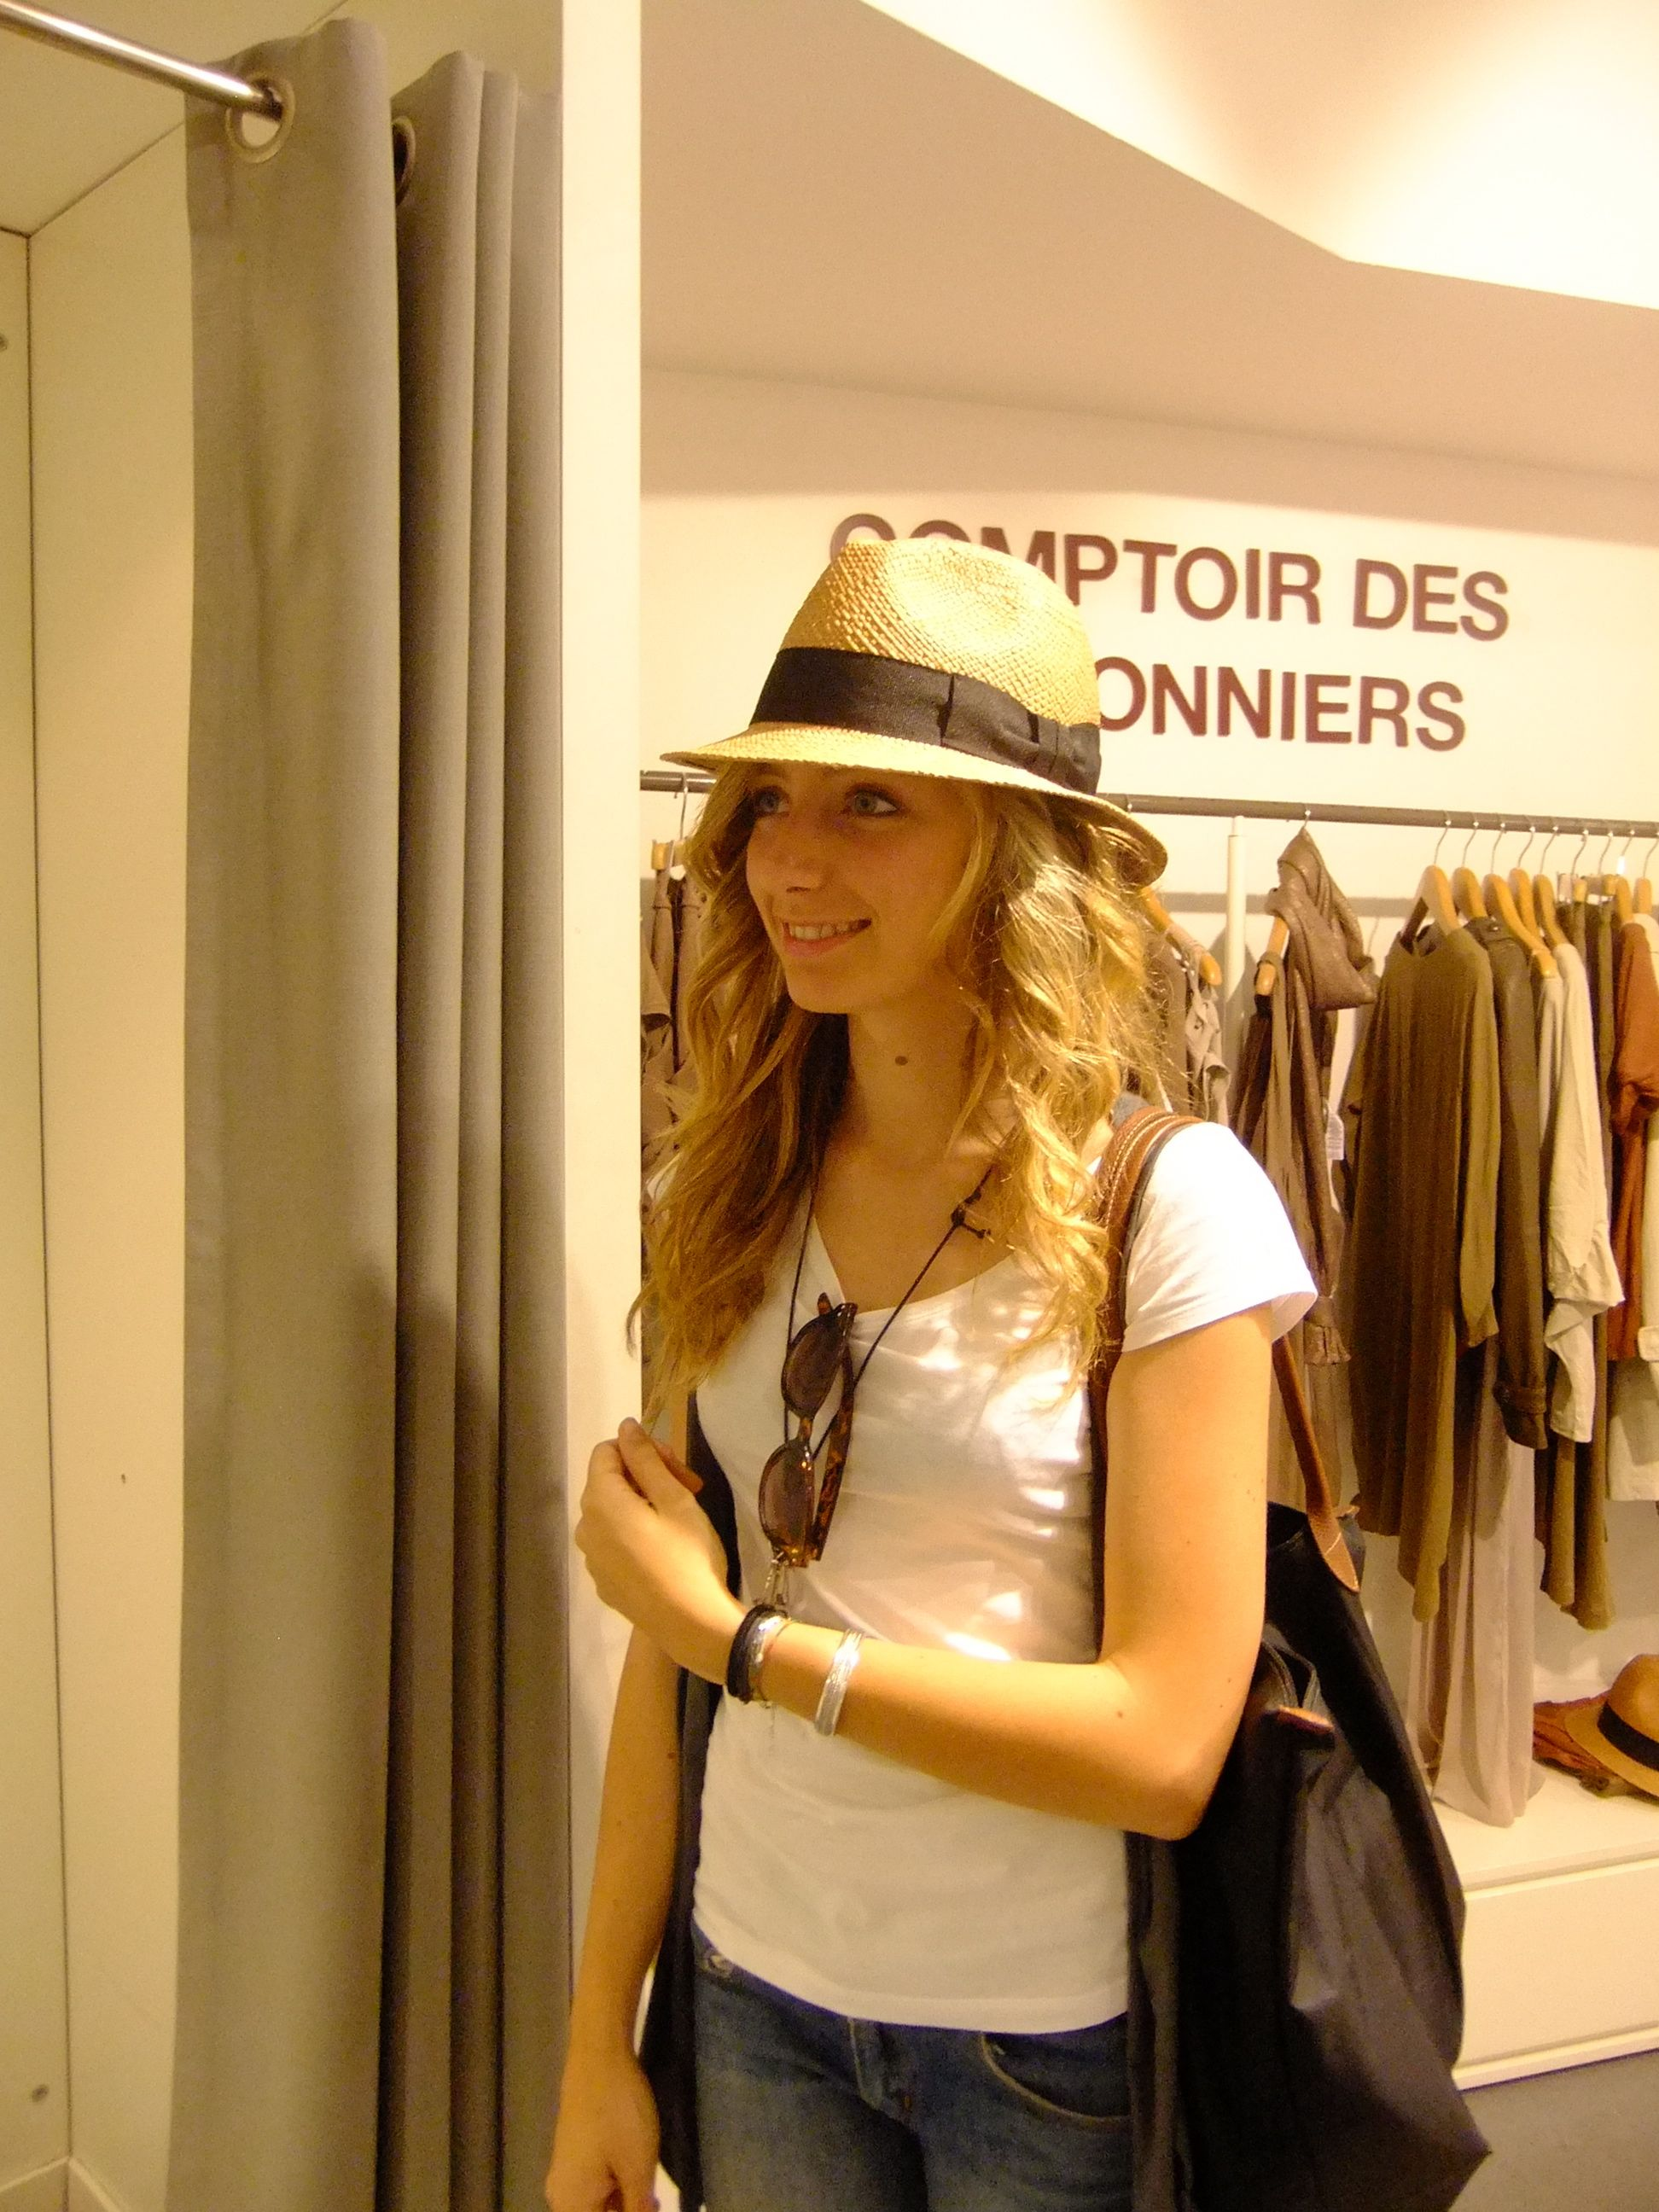 b6bfdbbb84ce1 The first hat by Comptoir des Cotonniers is a fedora with a gros grain  black hatband